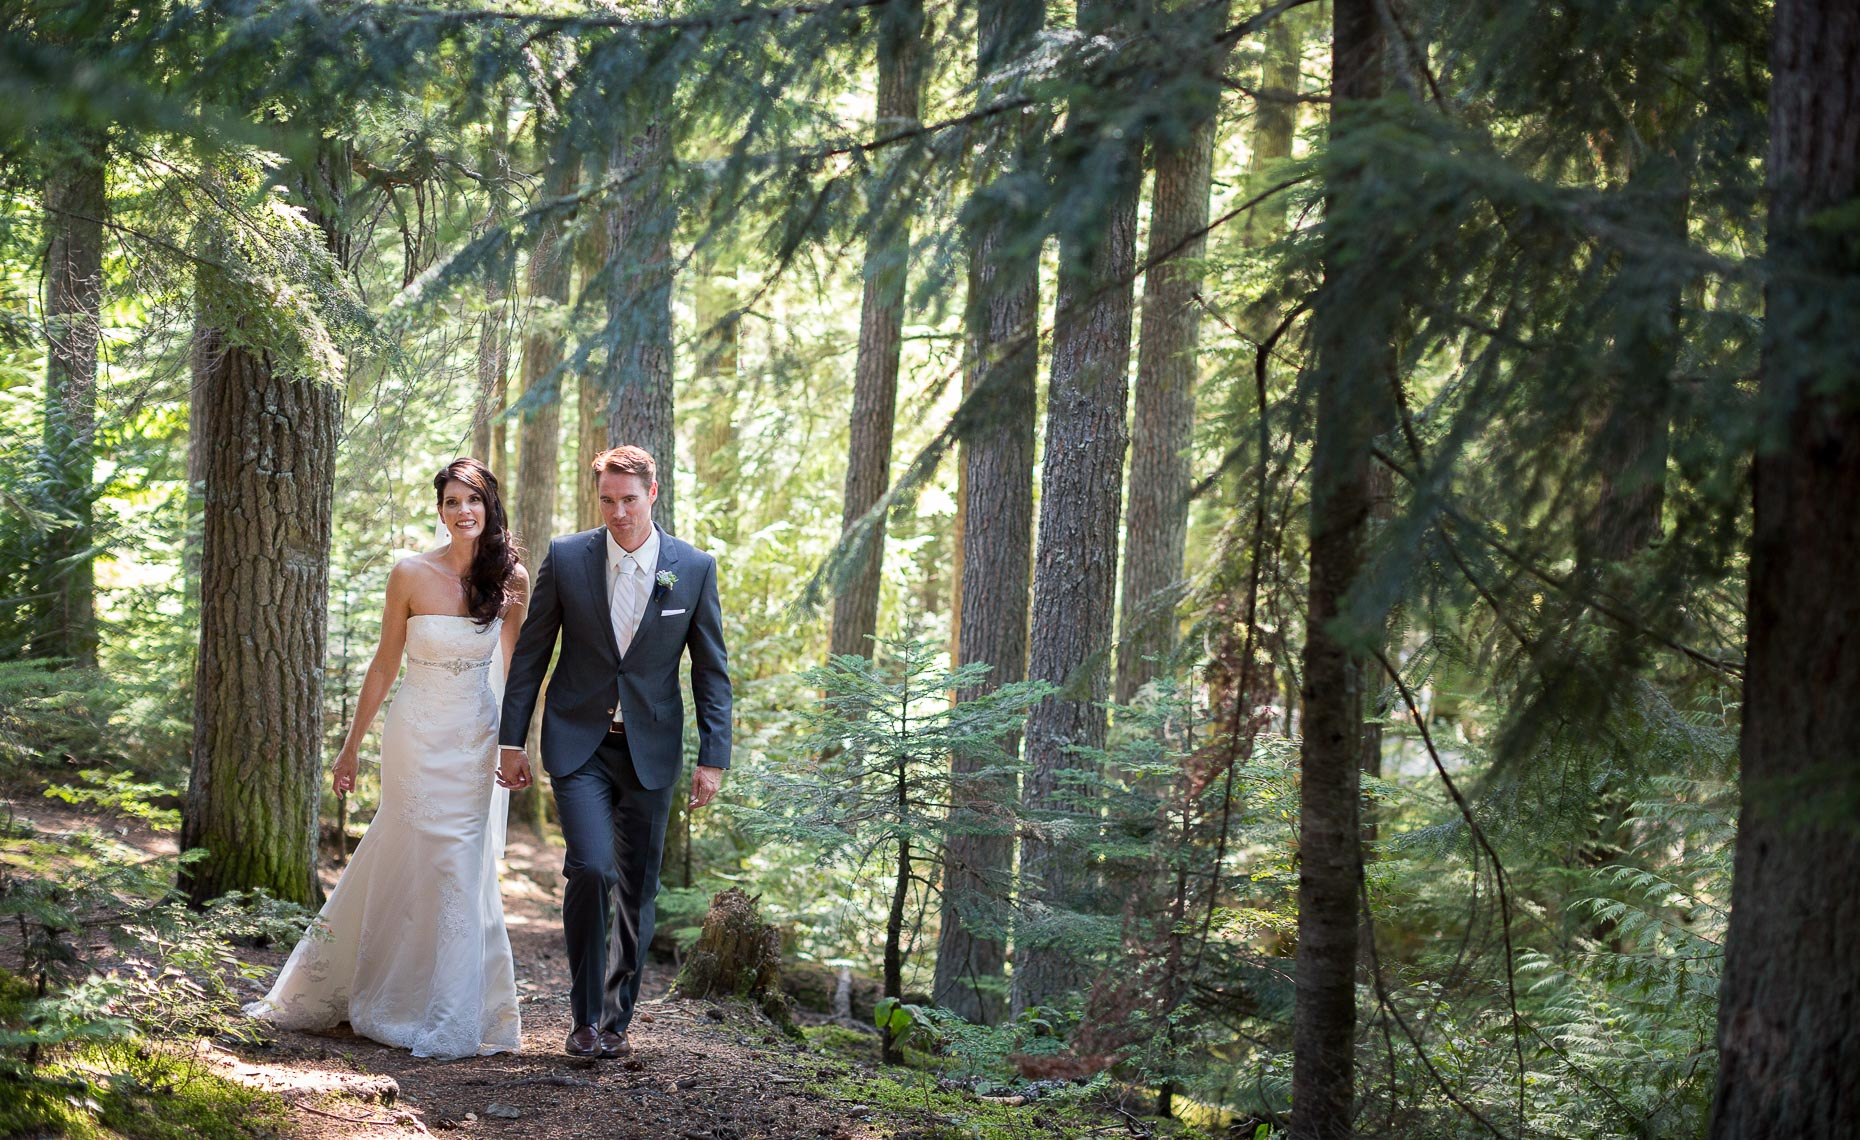 wilderness adventure wedding couple walking in the forest